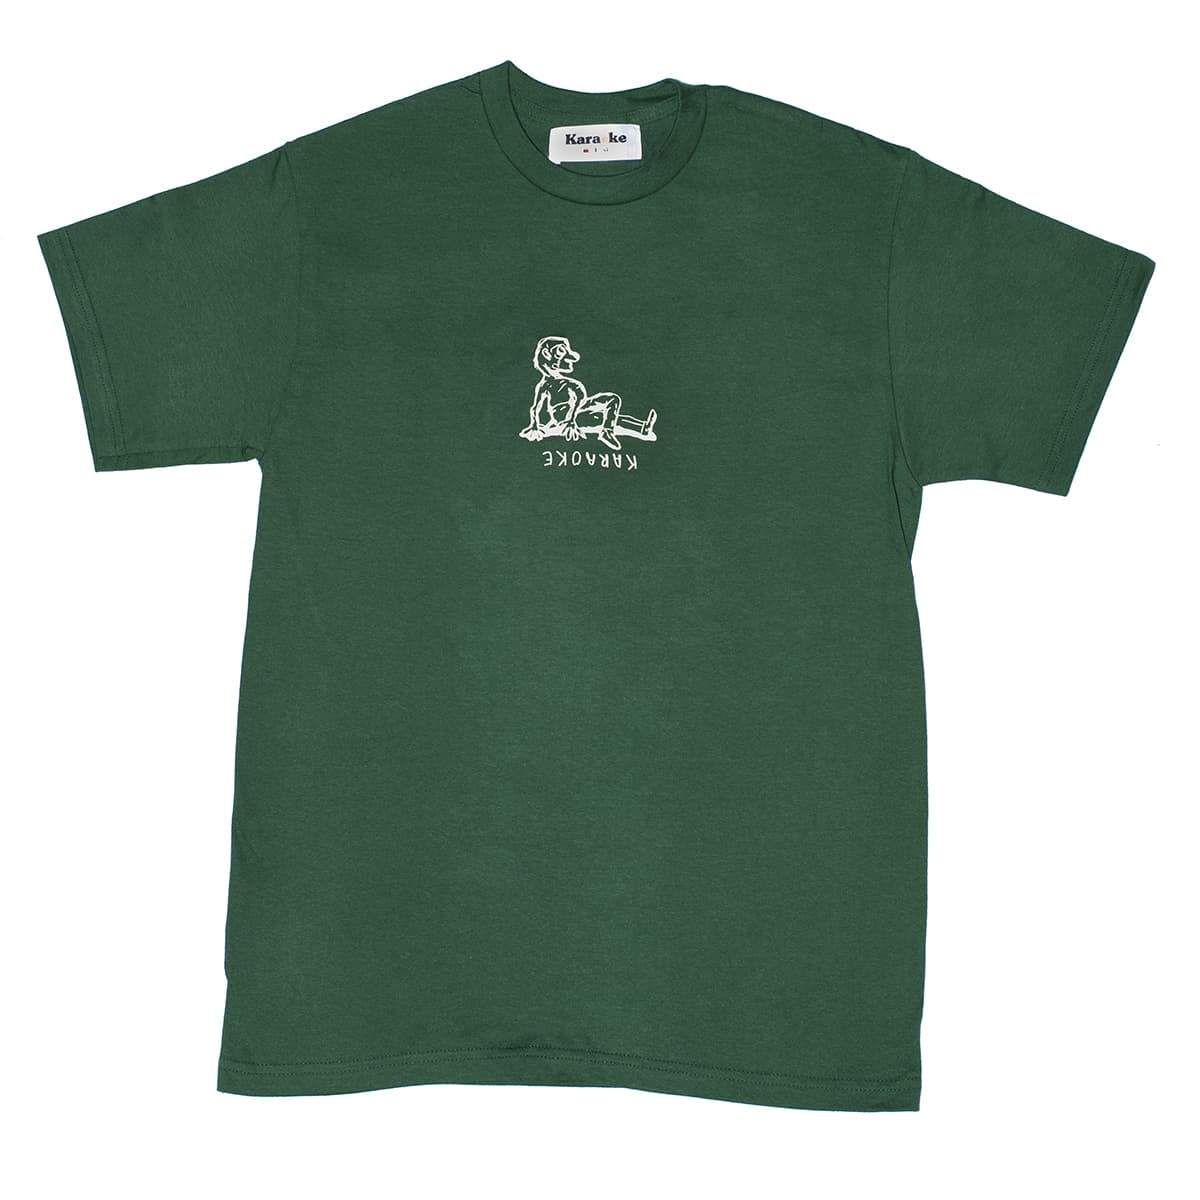 Yoga T-shirt (flexible green)